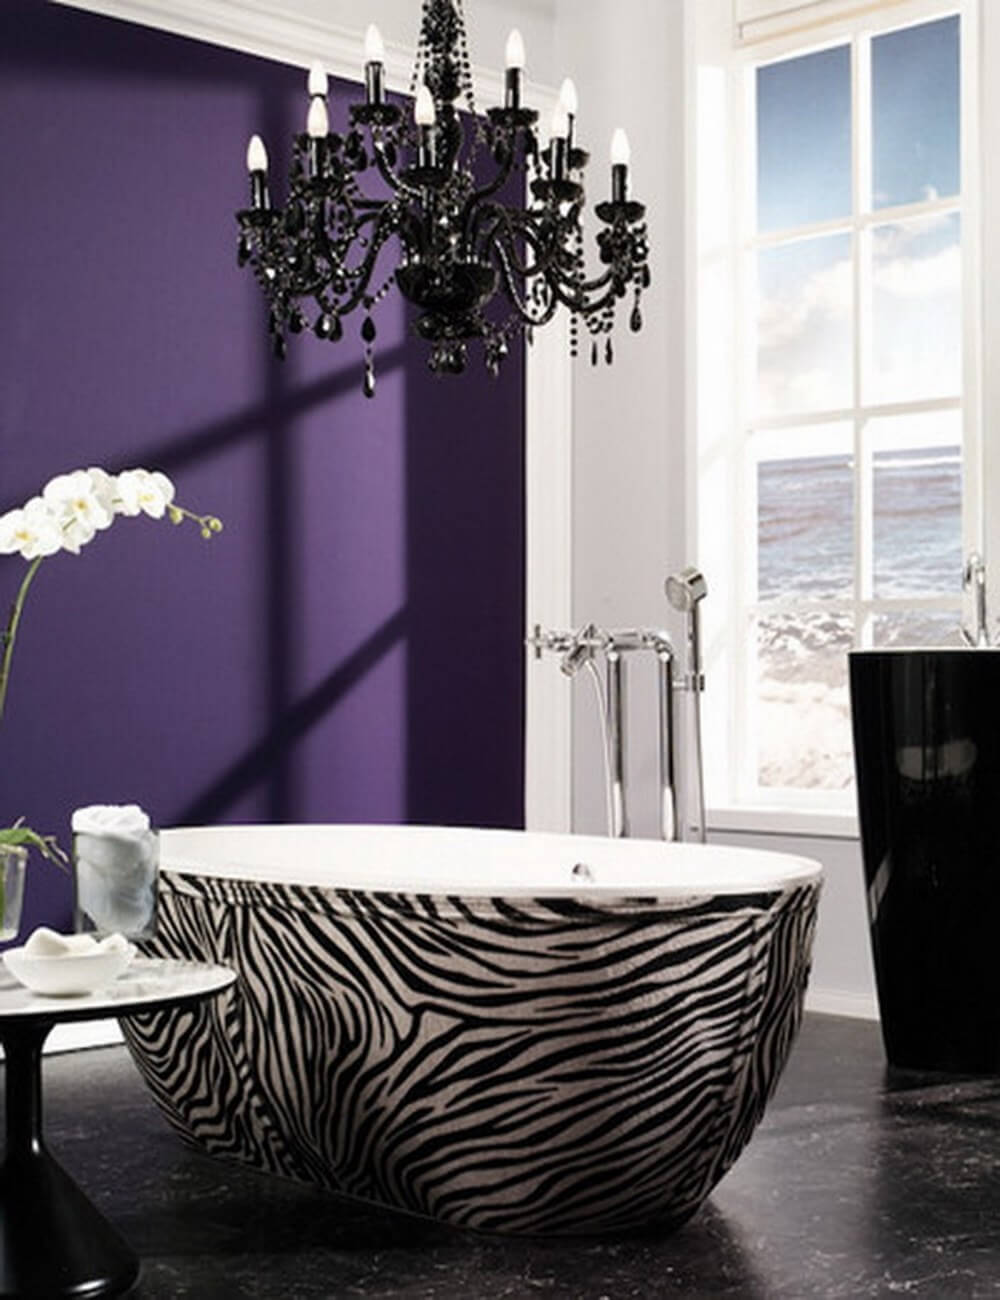 Pretty Mosaic Bathrooms Design Small Bathtub Ceramic Paint Square Roman Bath London Wiki Top 10 Bathroom Faucet Brands Young 30 Bathroom Vanity Without Sink BlueJacuzzi Bath Shower Head Zebra Print Bathroom Accessories